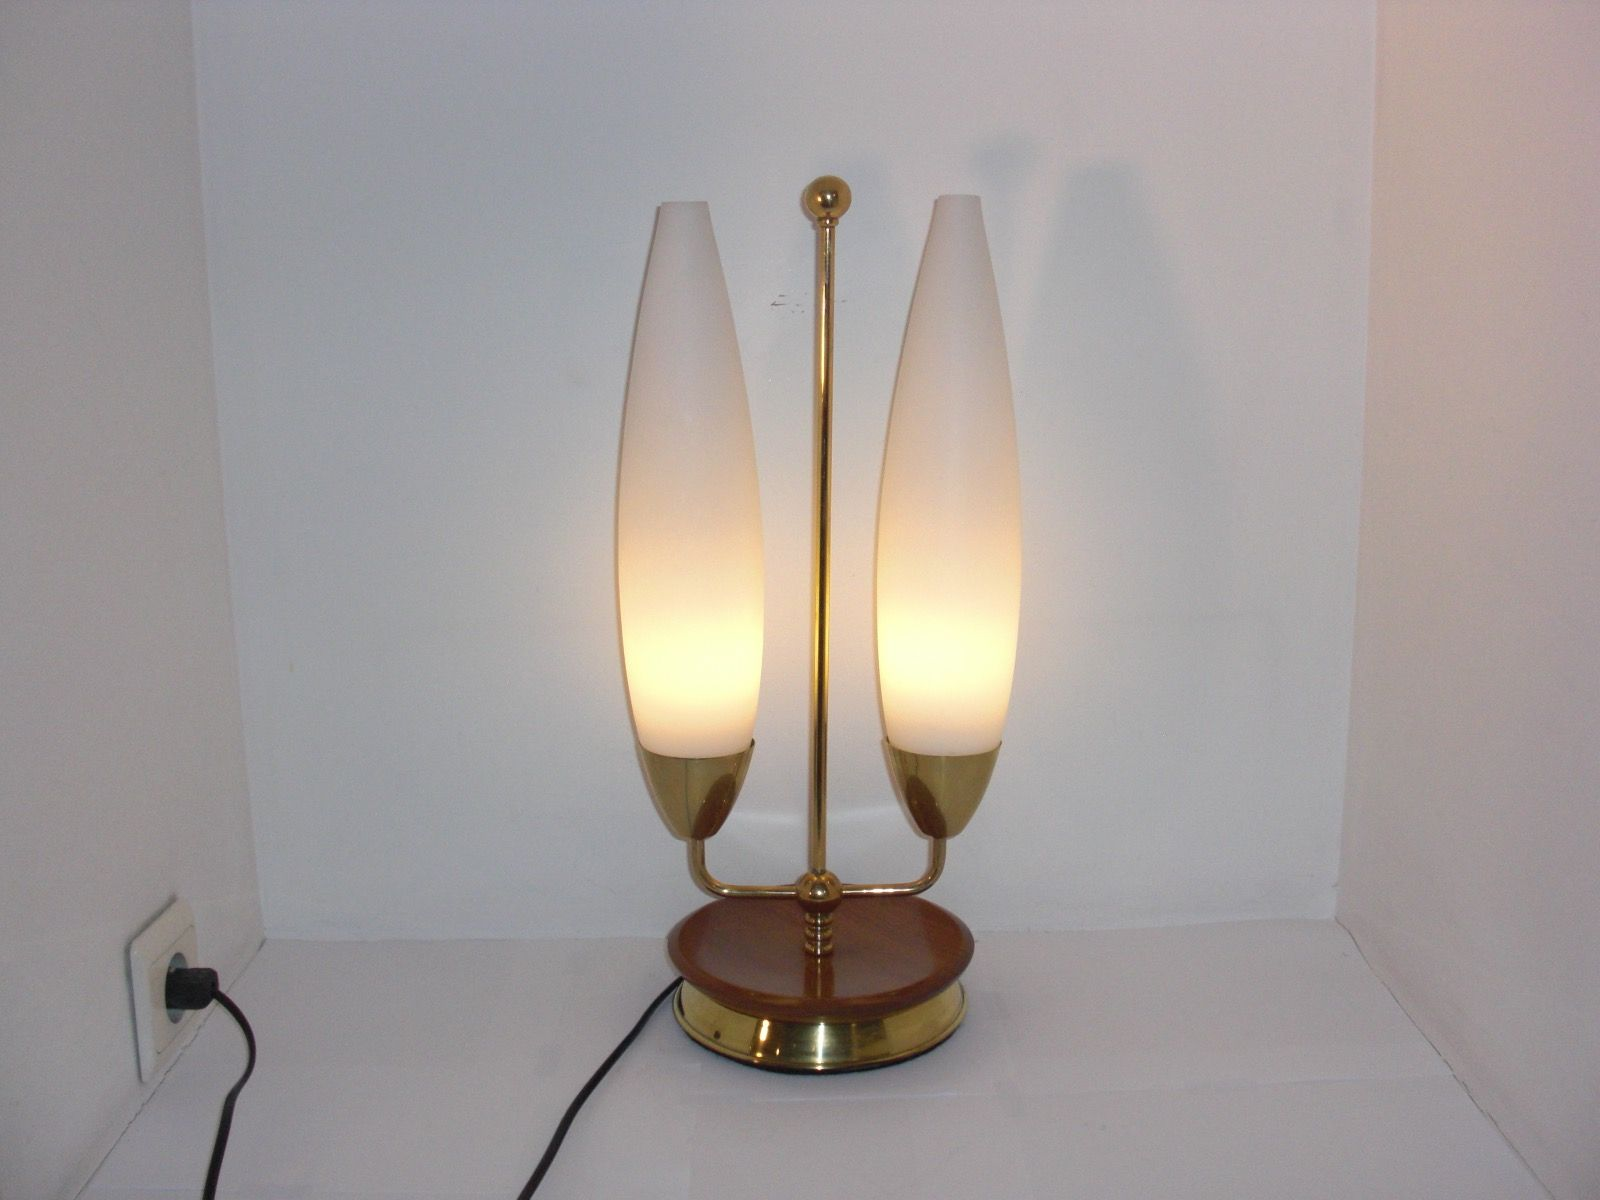 Vintage Lamp With Two Opaline Glass Shades For Sale At Pamono